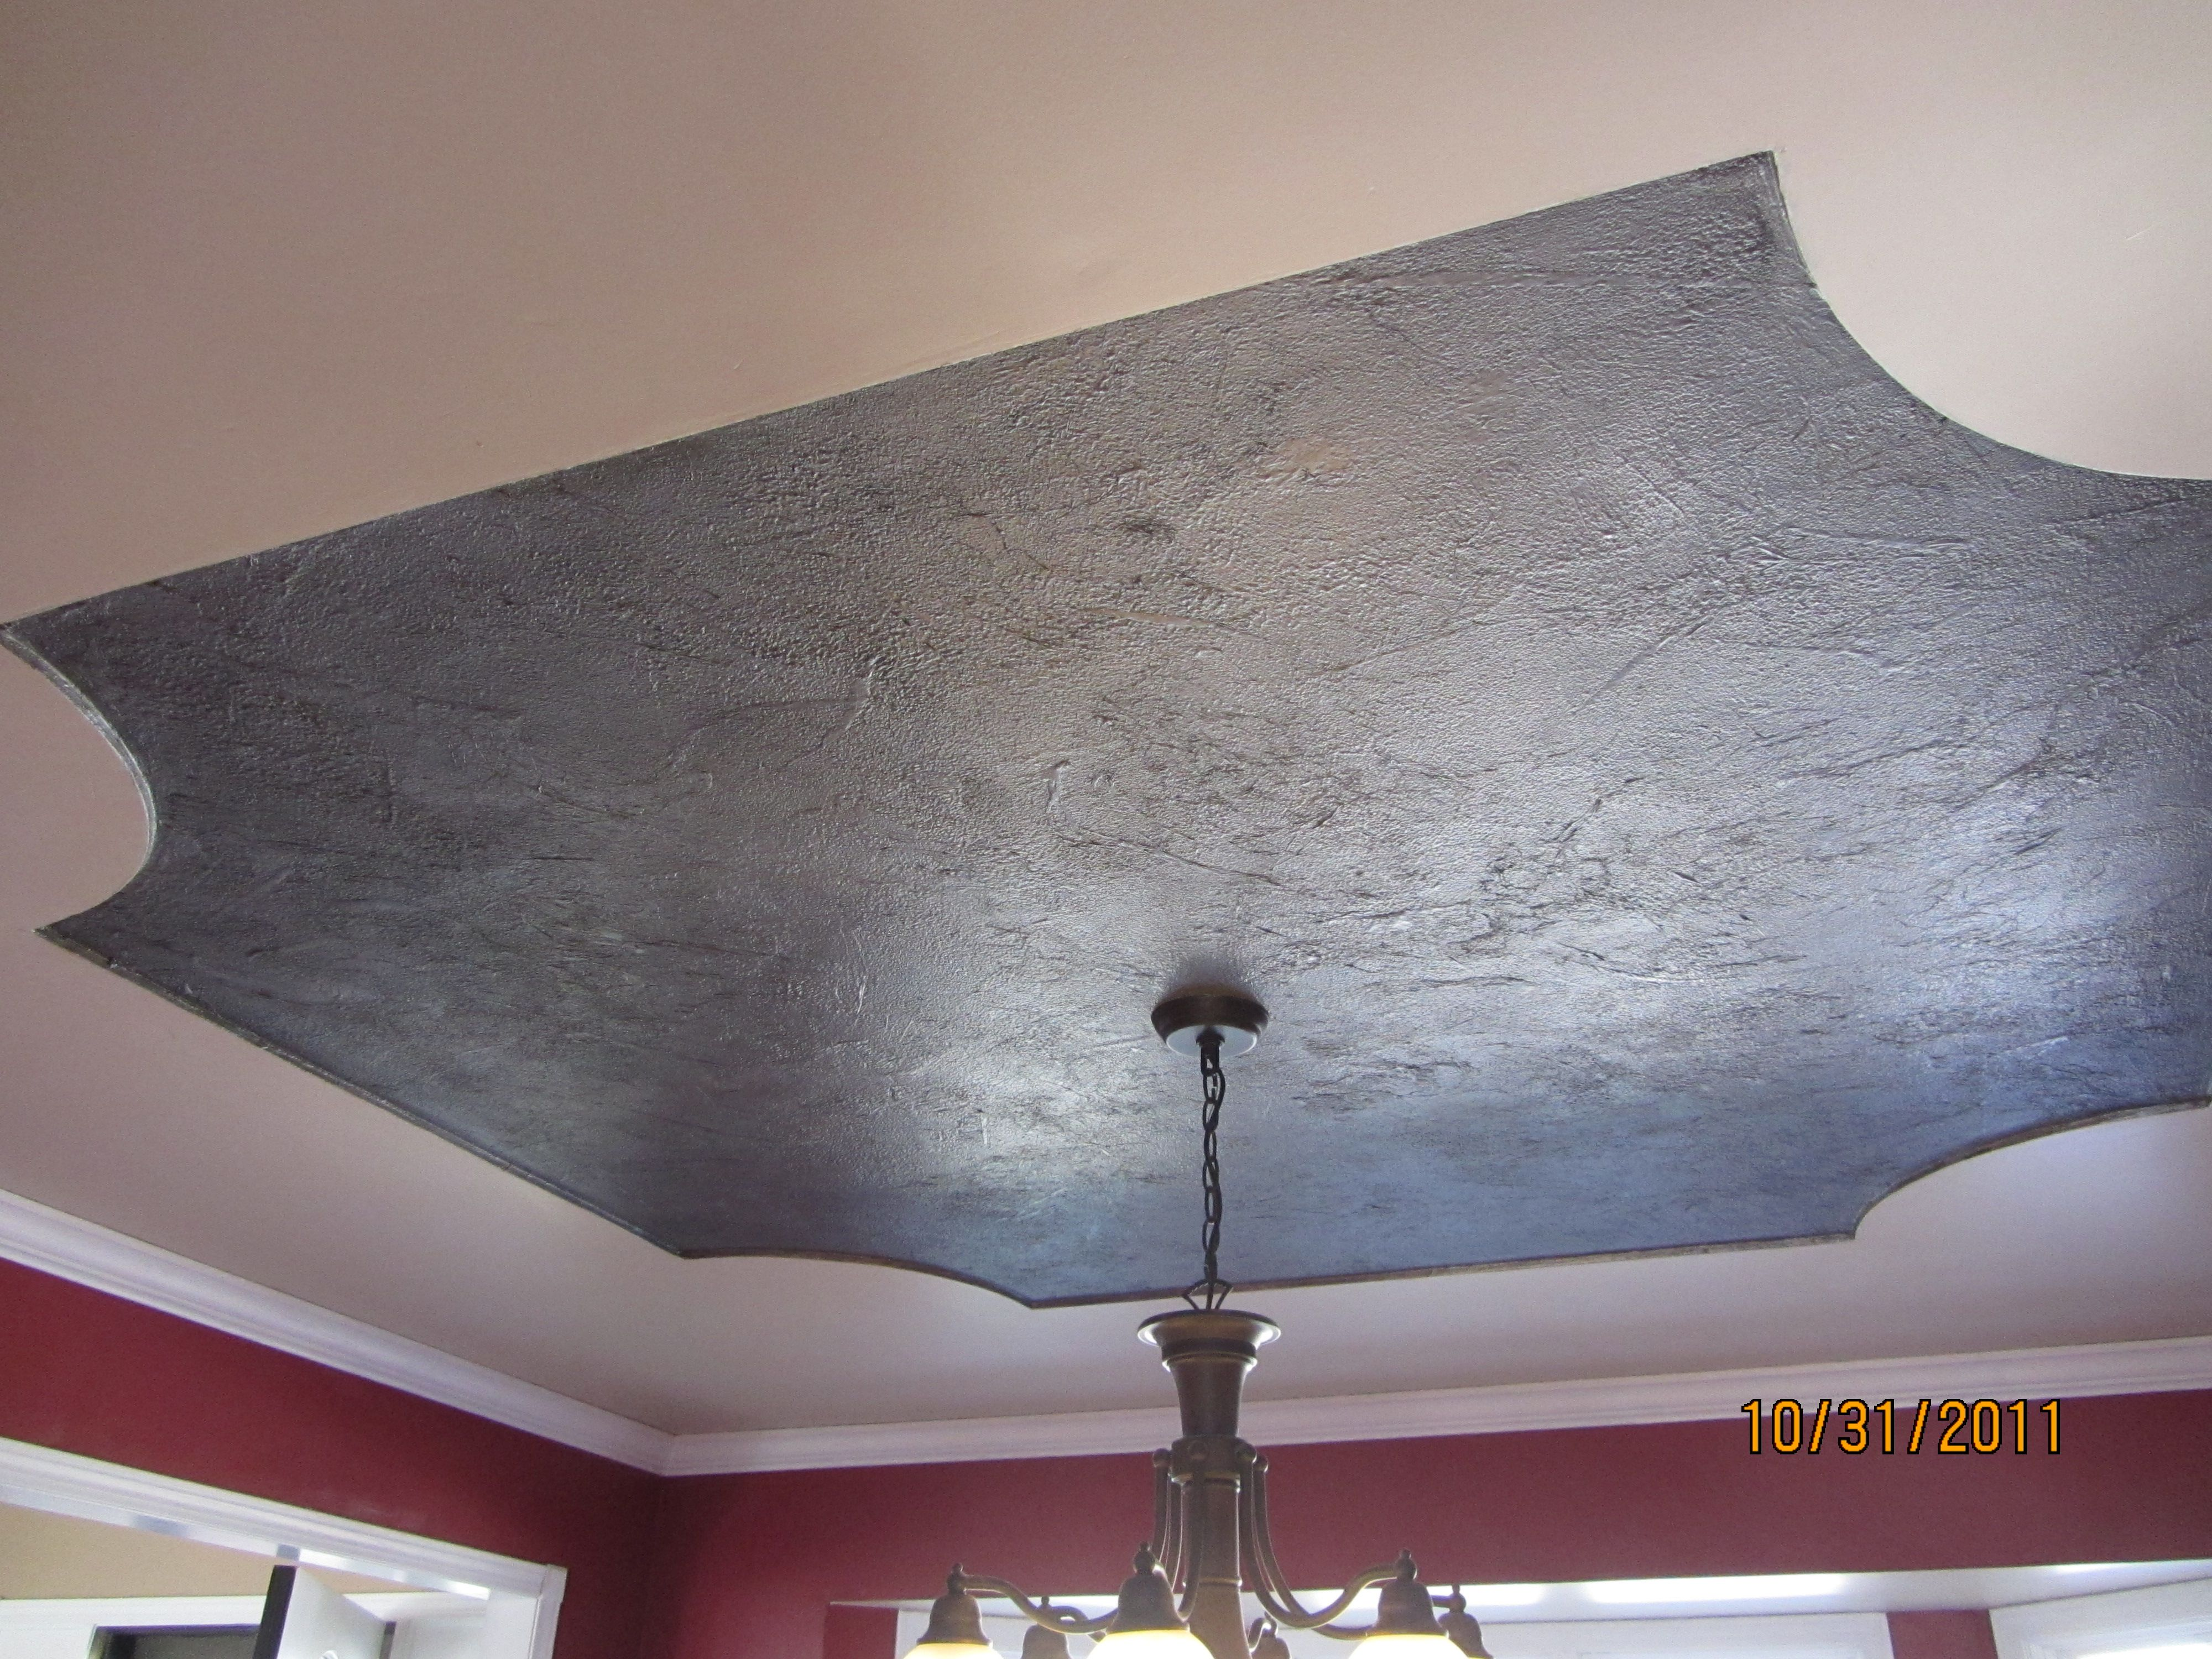 My Dining Room Ceiling Paint Base Coat Crunch Up Tissue Paper And Push It Into Wet Paint Roll Anothe Dining Room Ceiling Bedroom Redesign Ceiling Painting